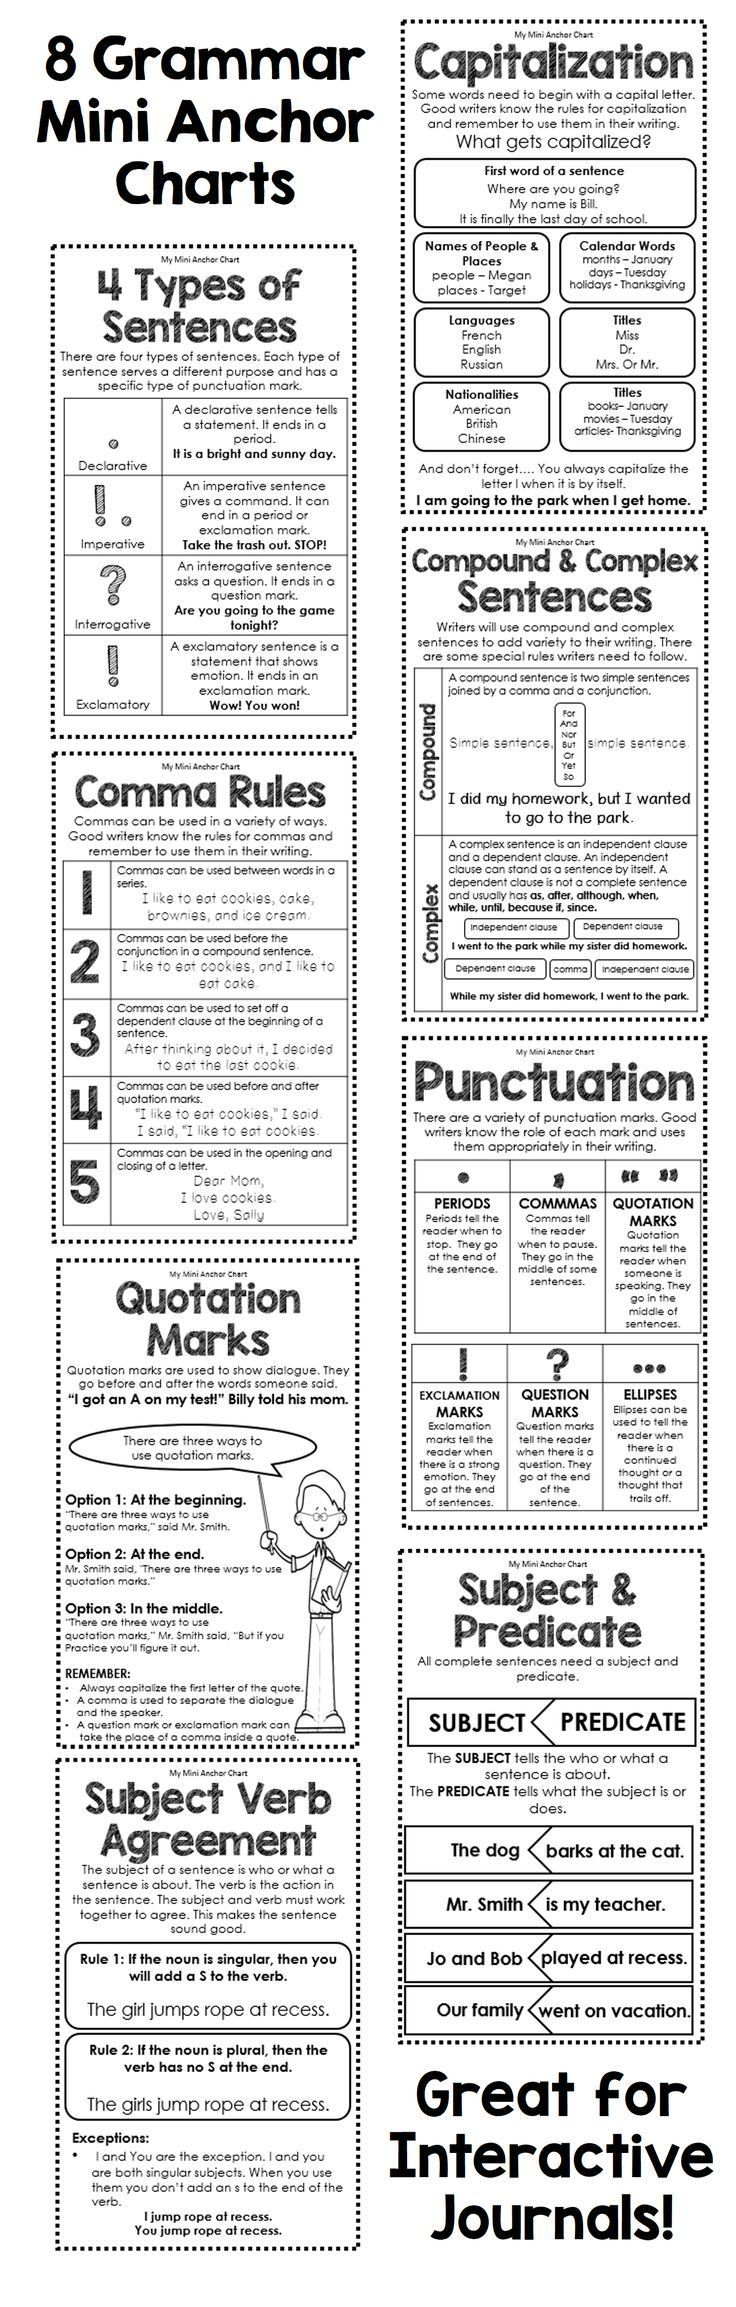 Workbooks plural rules worksheets : The 25+ best Subject verb agreement rules ideas on Pinterest ...